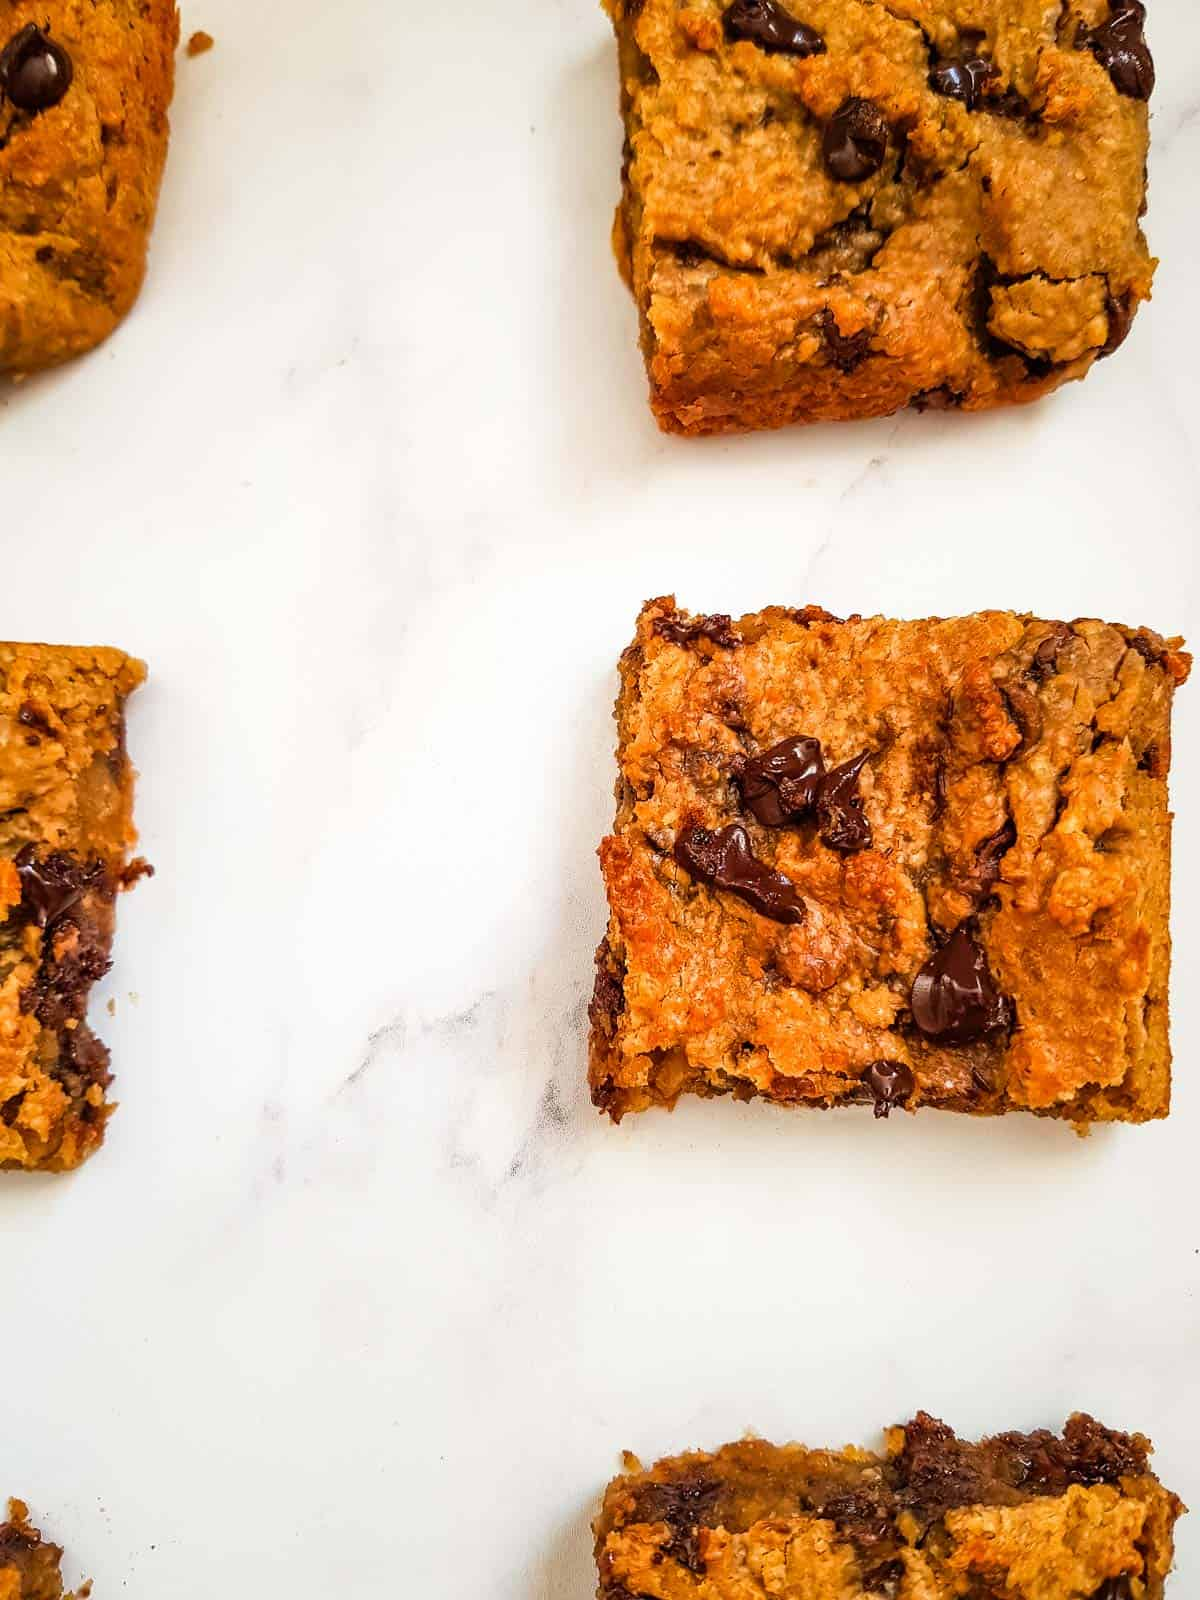 Chocolate chip chickpea blondies.